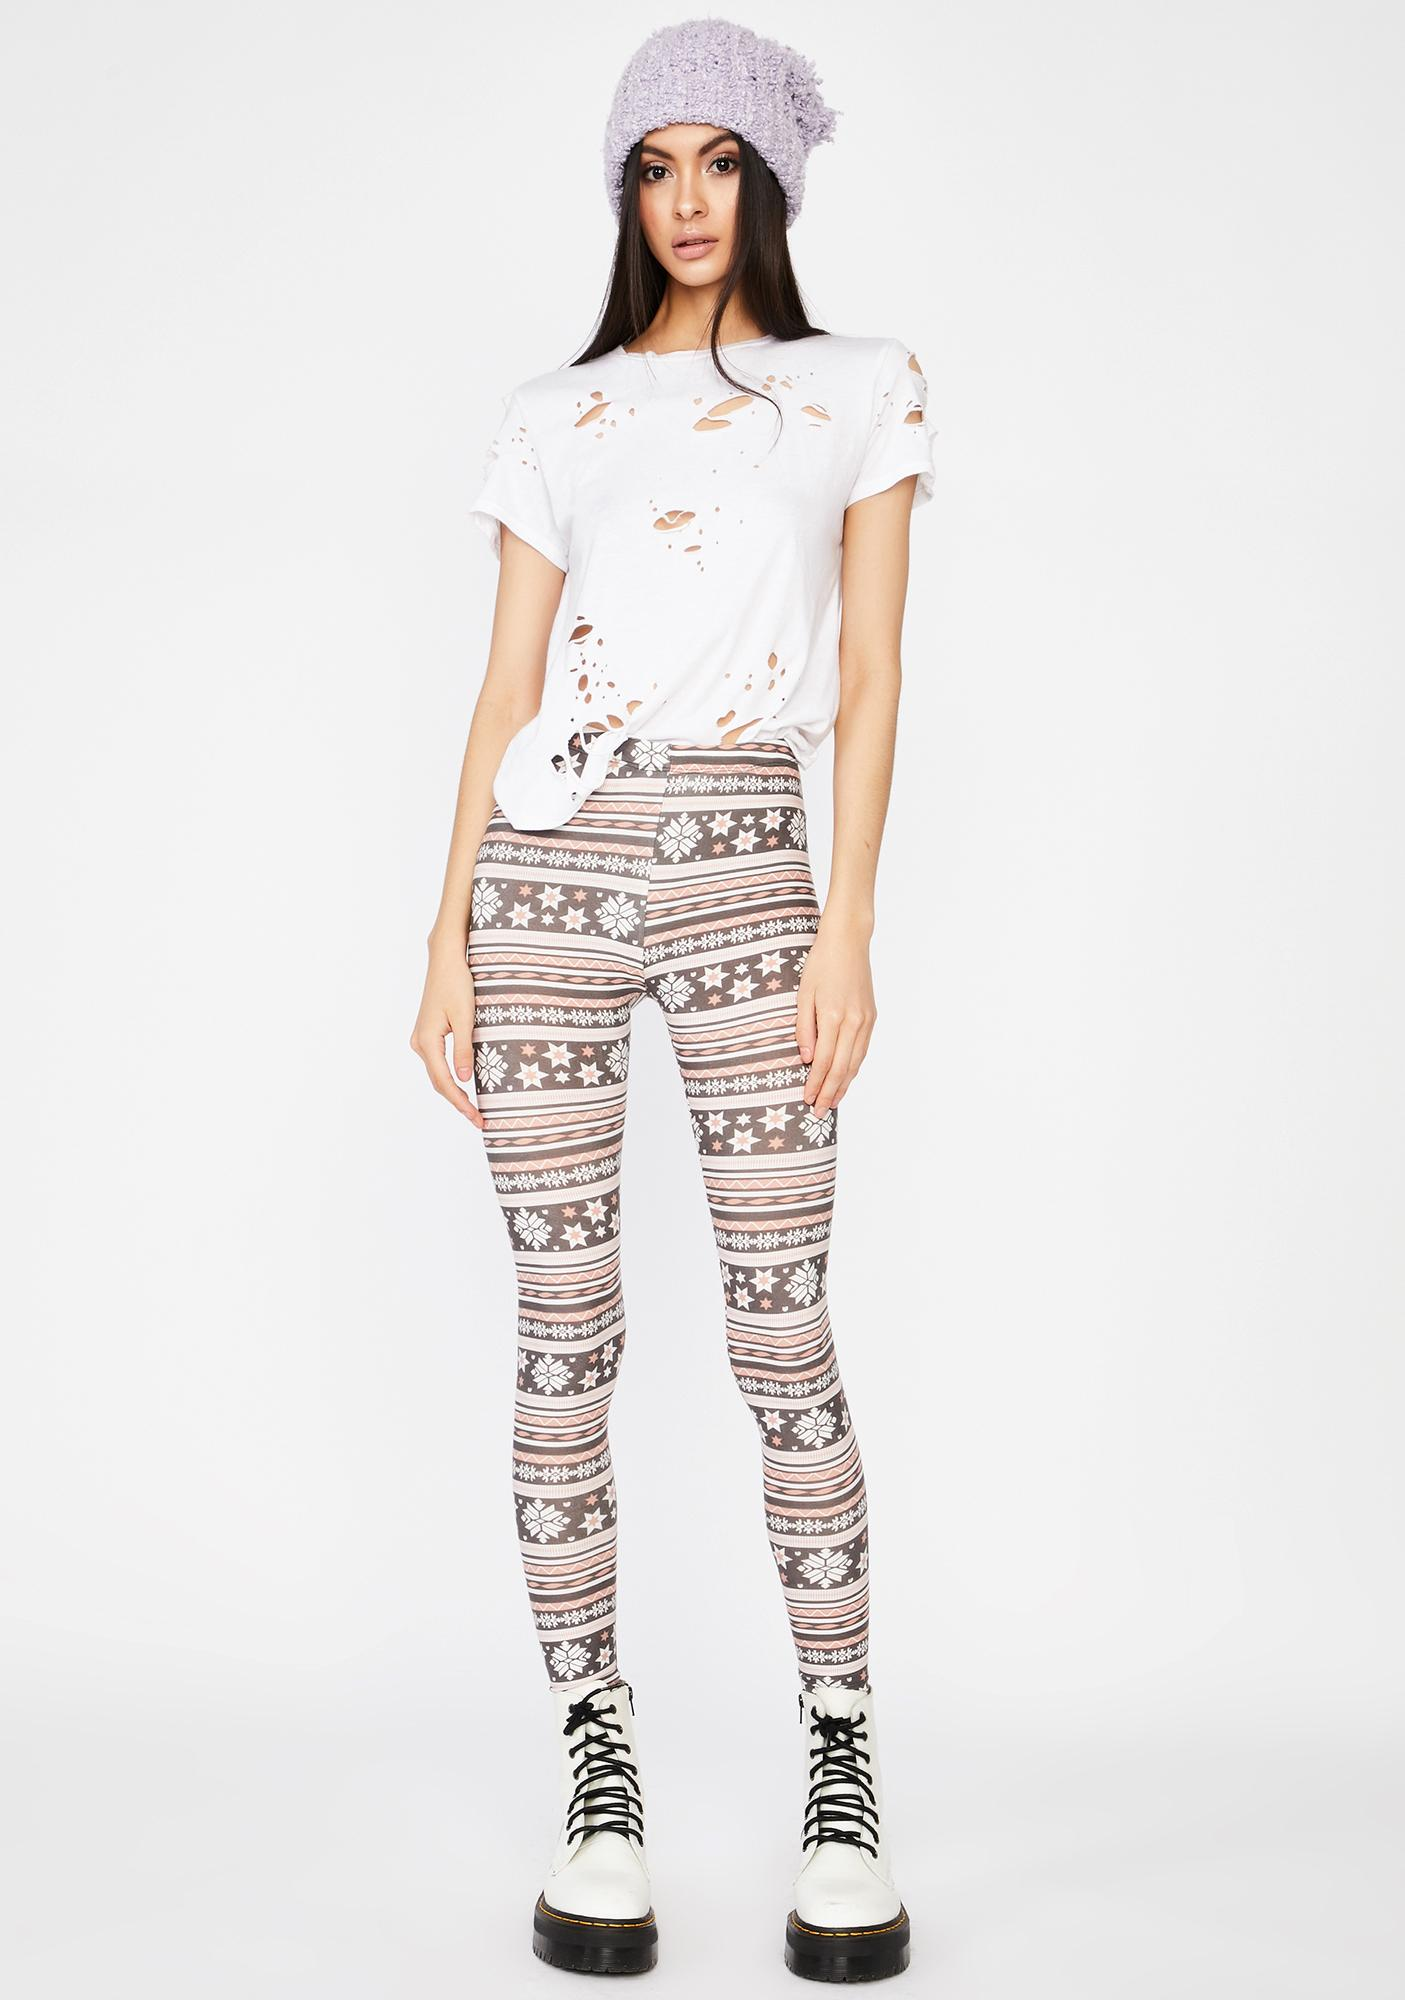 Frightful Weather Snowflake Leggings